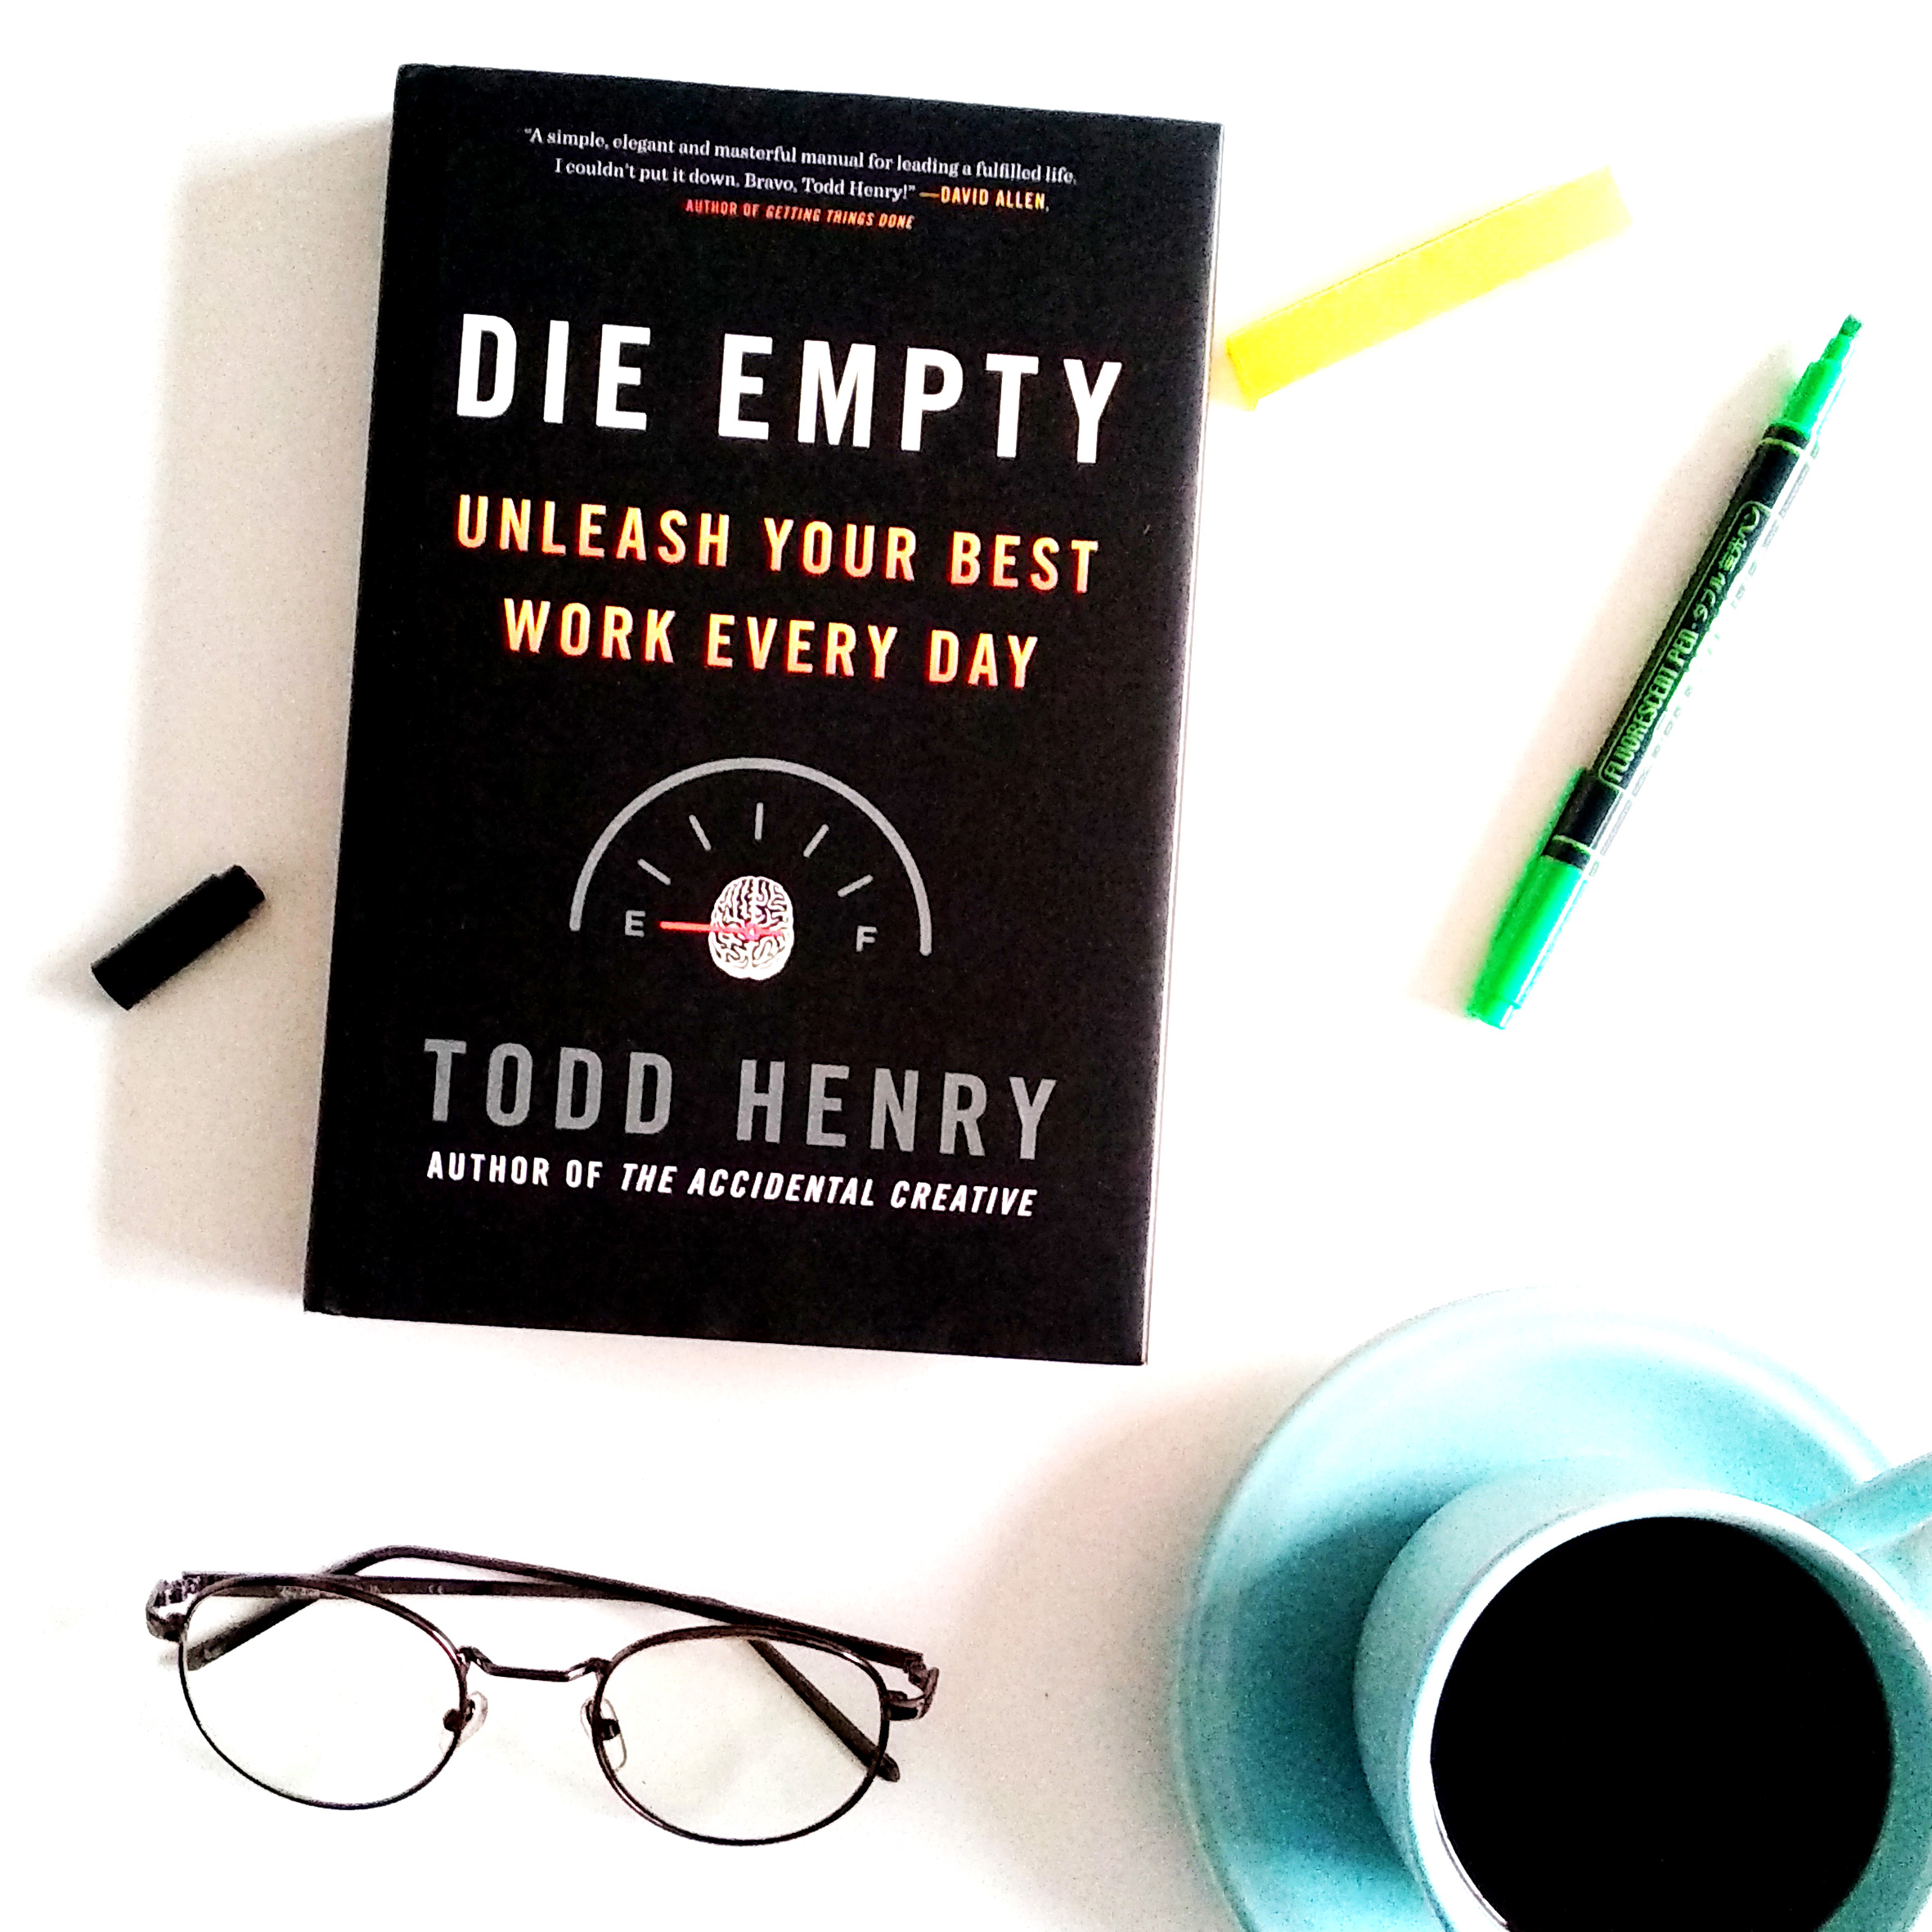 Die Empty Unleash Your Best Work Every Day